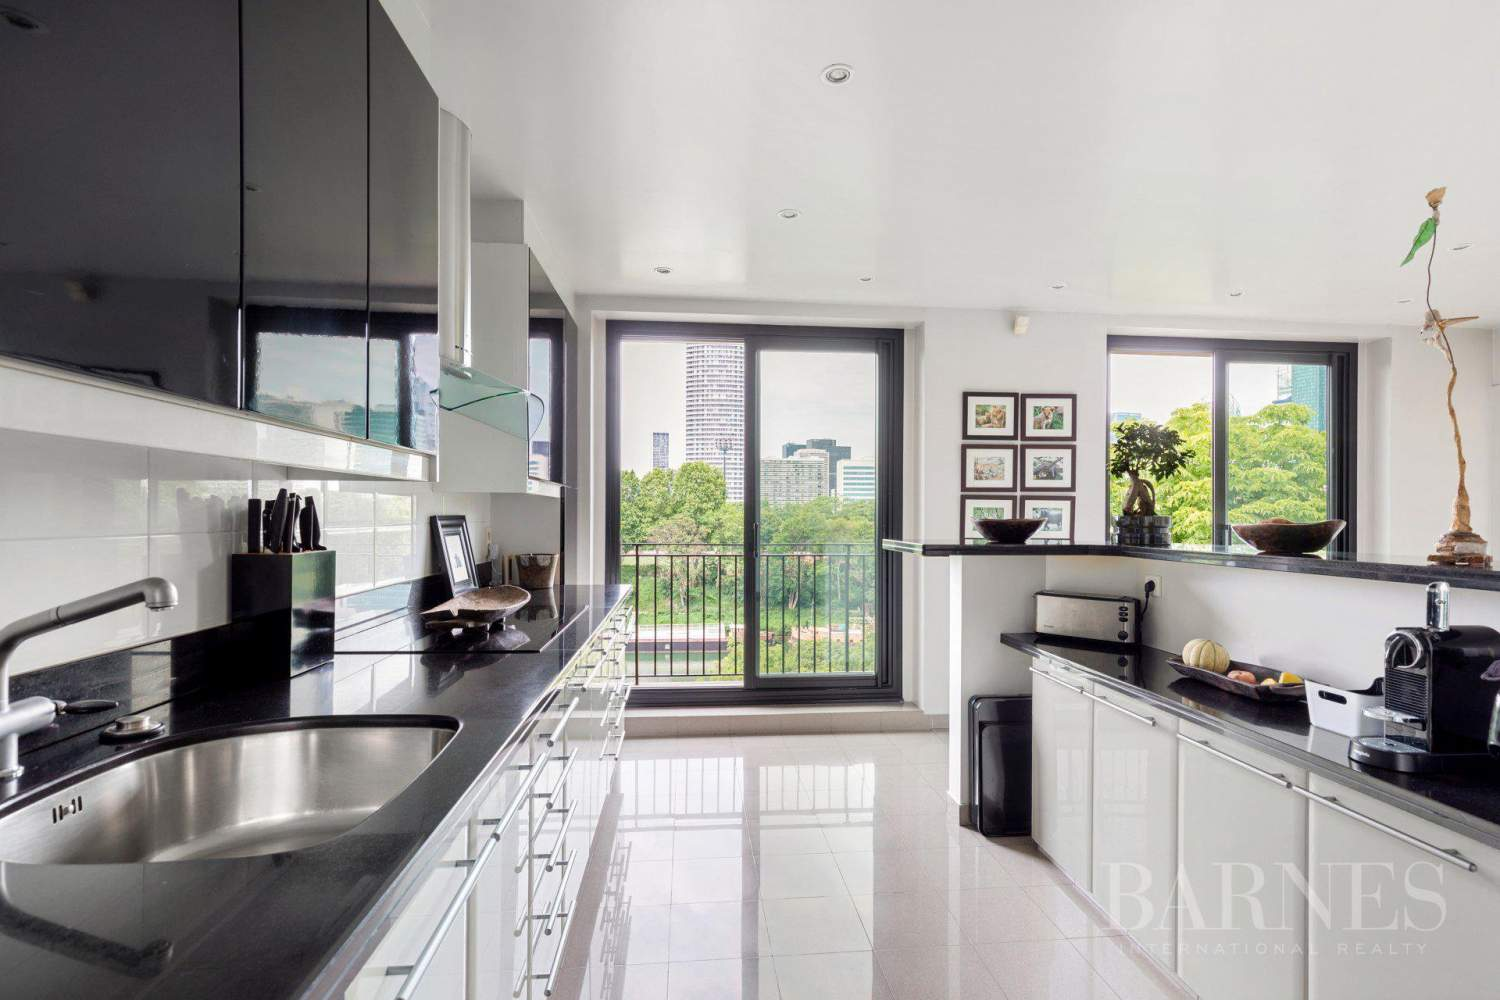 EXCLUSIVE - NEUILLY SAINT-JAMES - APARTMENT WITH RECEPTION ROOMS - UPPER FLOOR - PANORAMIC VIEWS picture 6